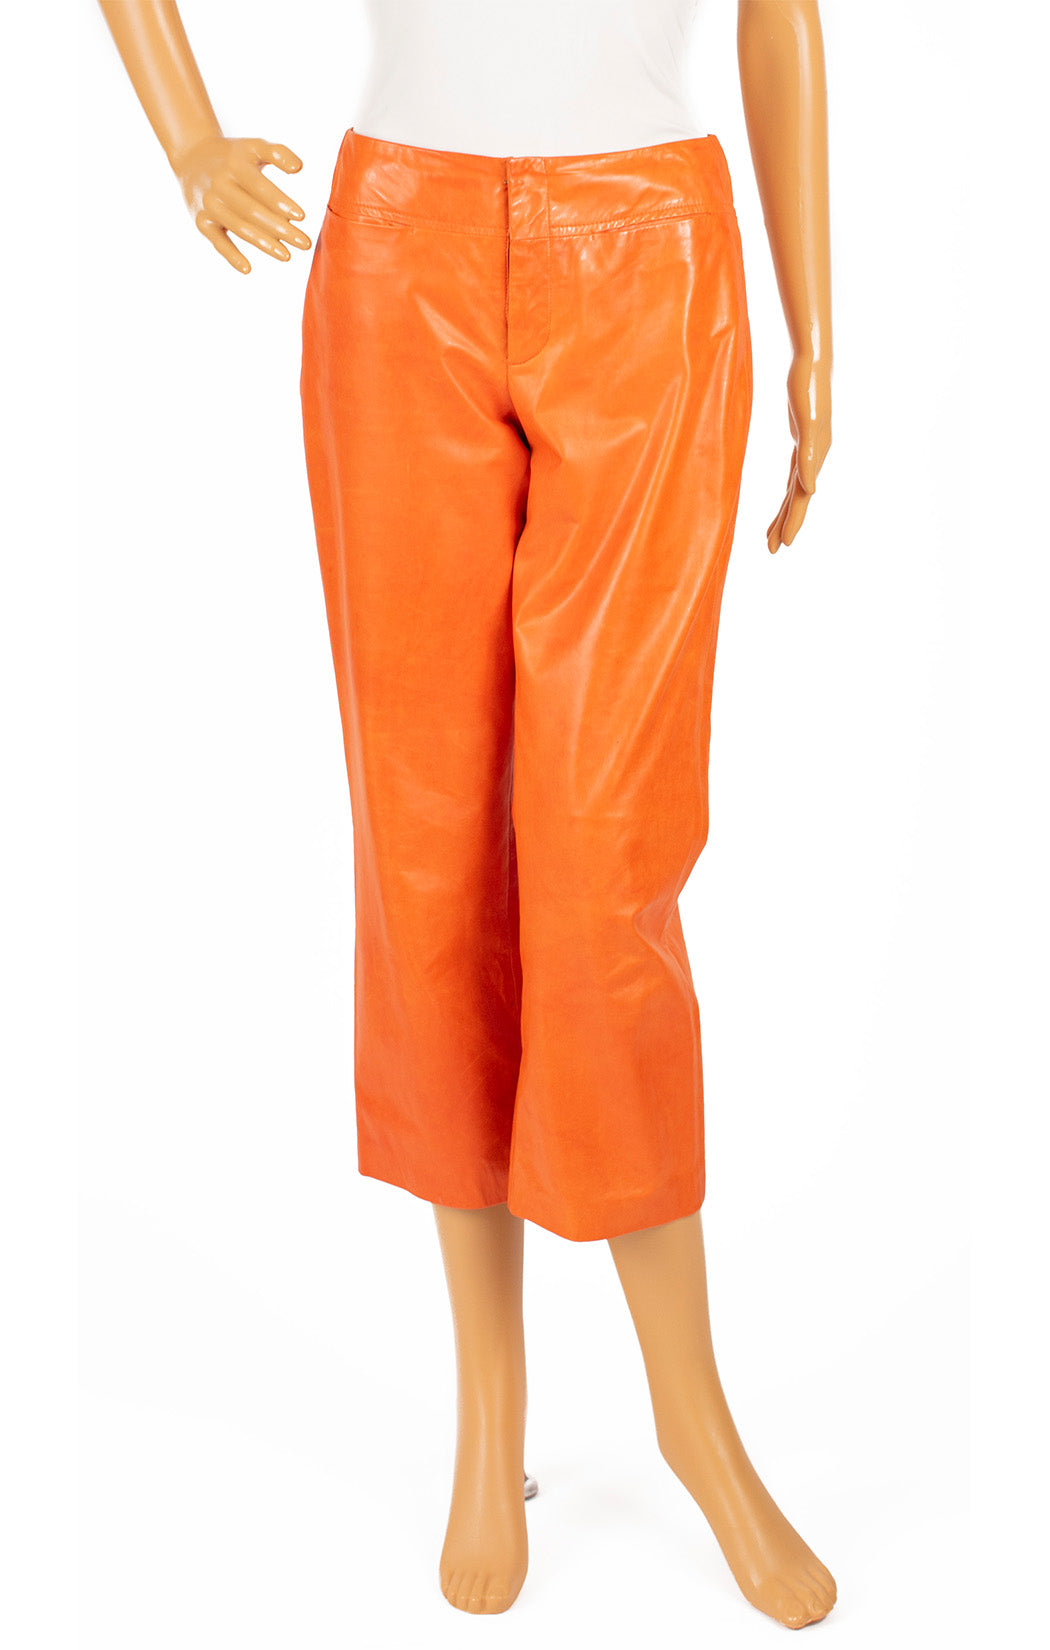 Front view CHAIKEN Leather pants Size: 6